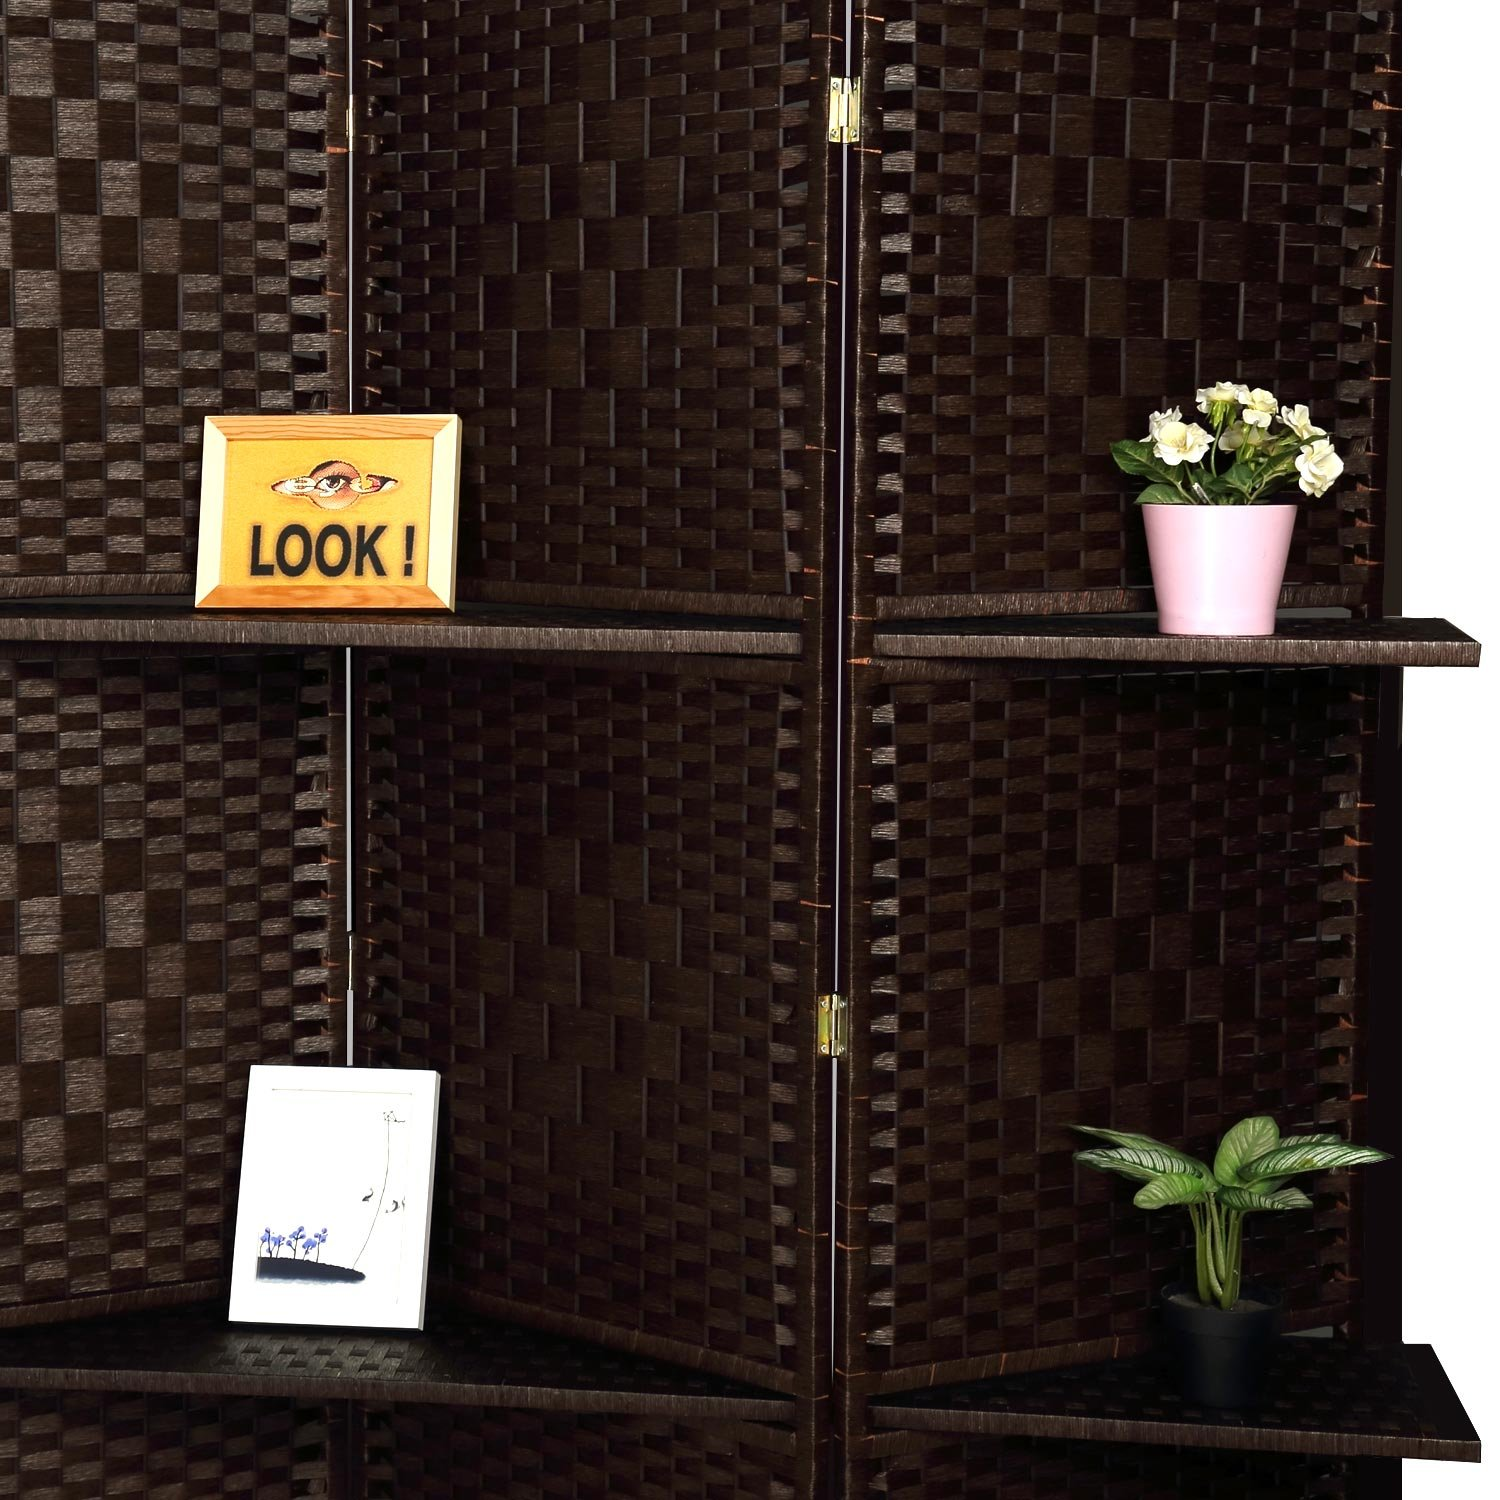 RHF 6 ft Tall (Extra Wide) Diamond Room Divider,Wall divider,Room dividers and folding privacy screens,Partition Wall, With 2 Display Shelves&room divider with shelves-DarkMocha-4 Panels 2 Shelves by Rose Home Fashion (Image #3)